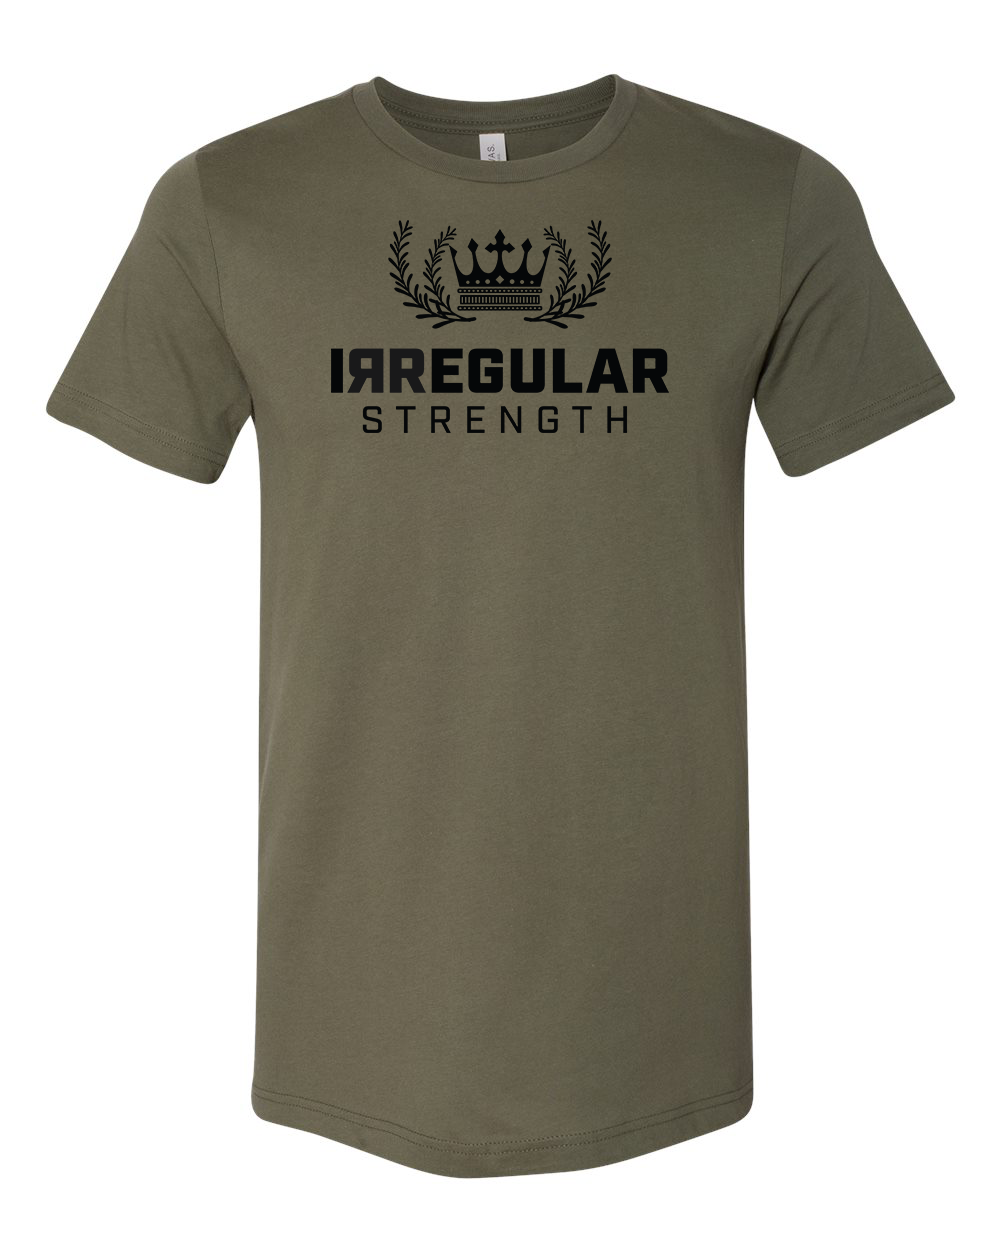 IRREGULAR STRENGTH CROWN TEE - ARMY GREEN *PREORDER*